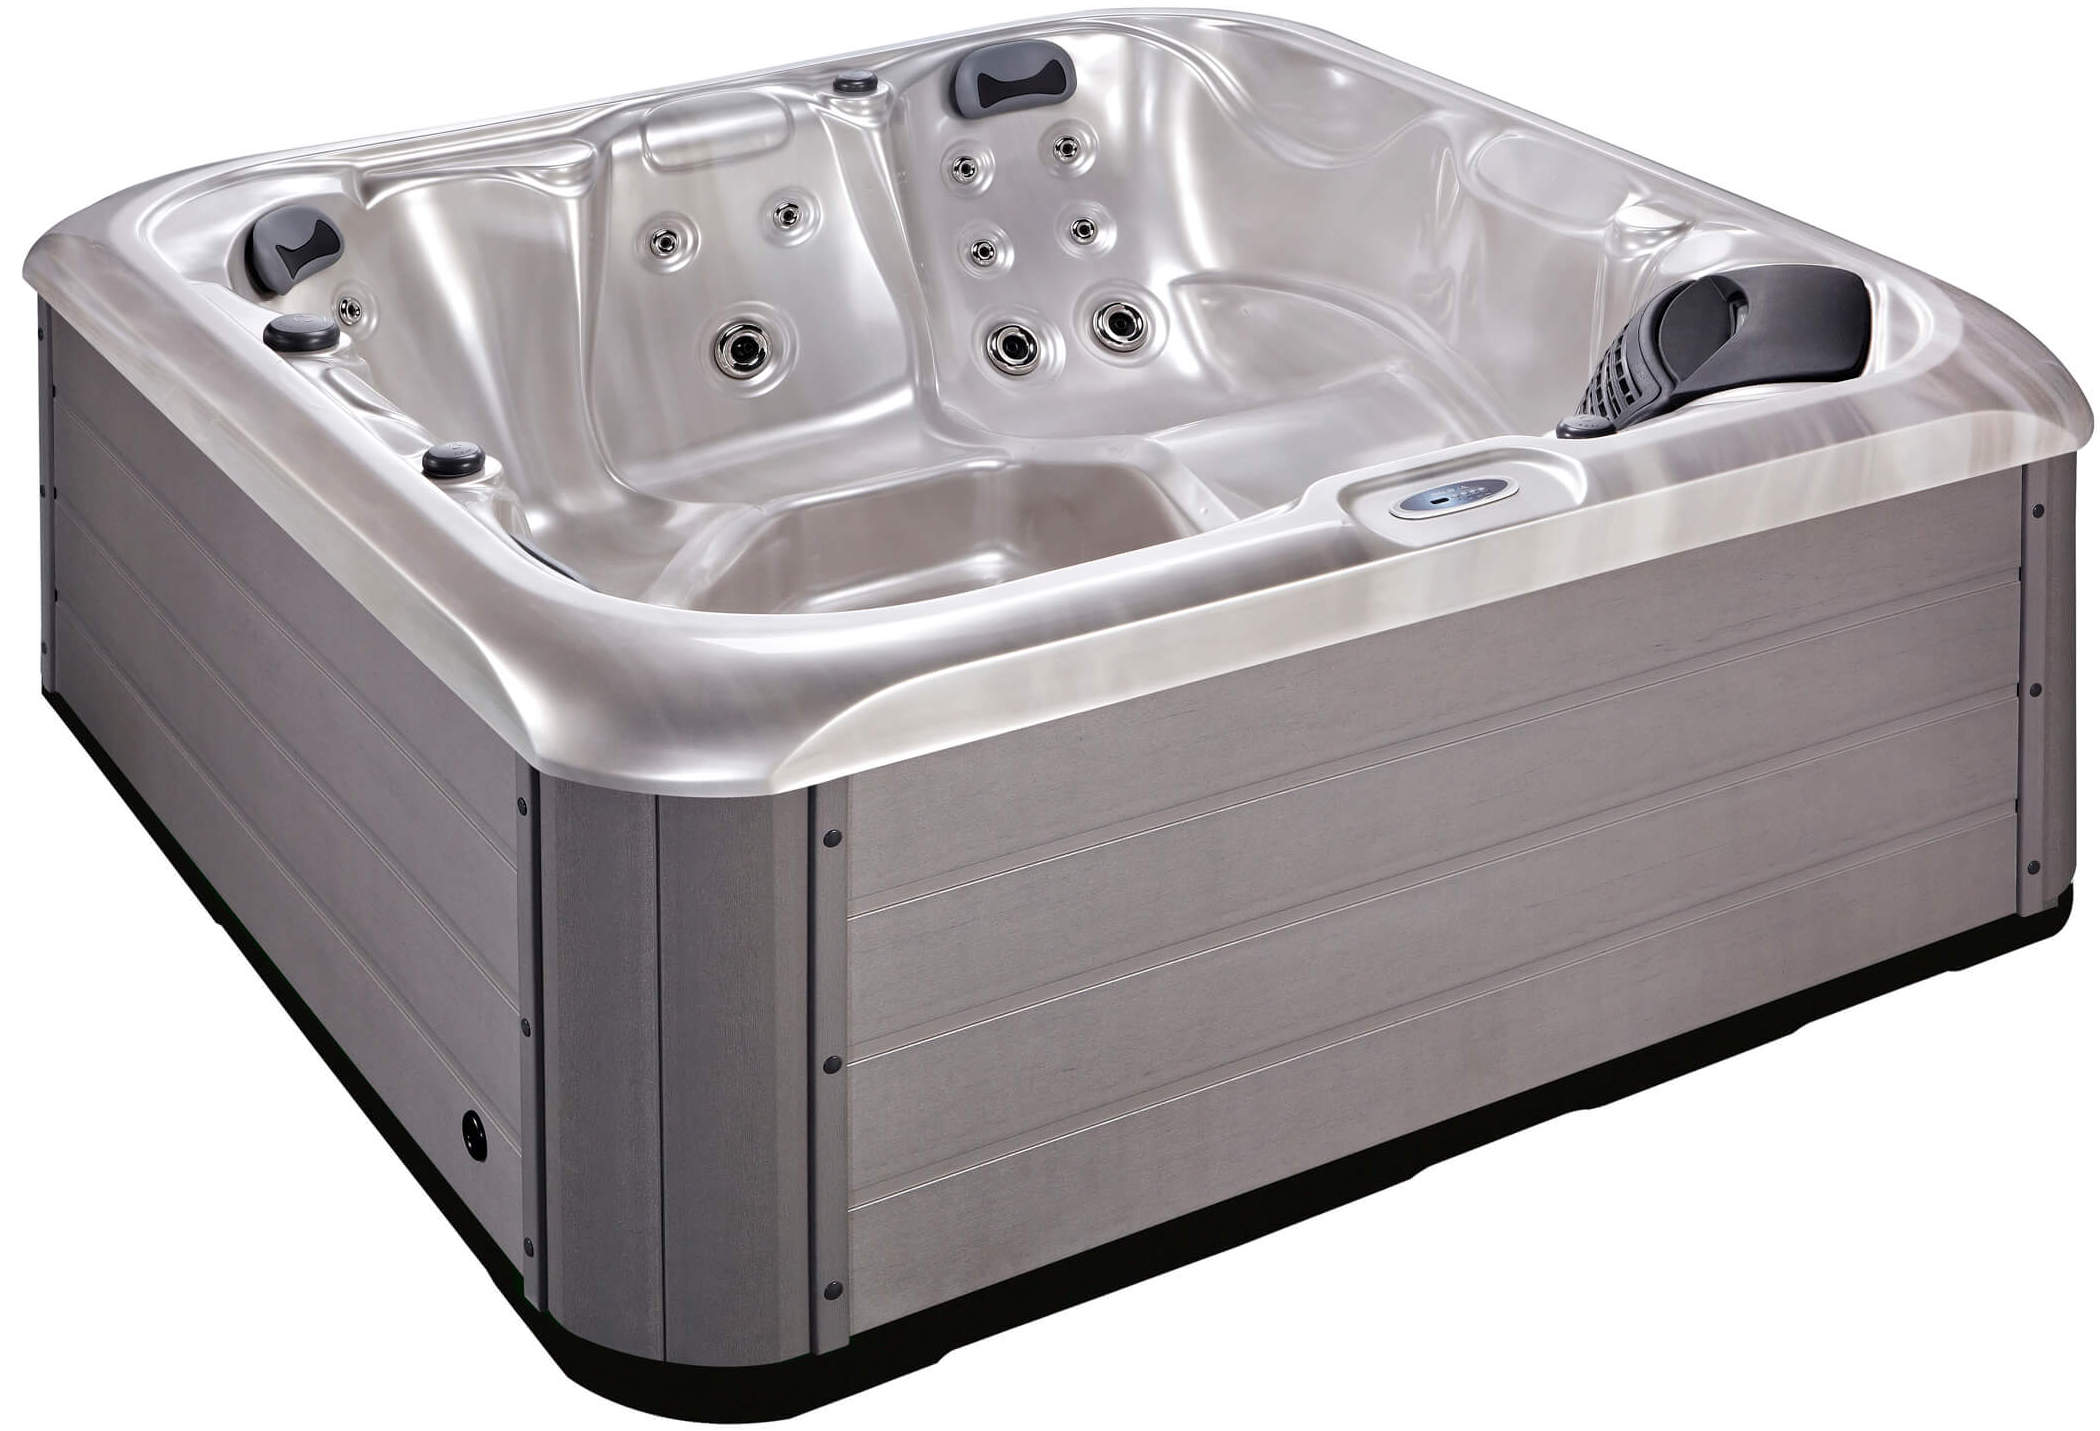 Jacuzzi Sale Promotion - FREE Delivery + Upgrade to 6 Seater